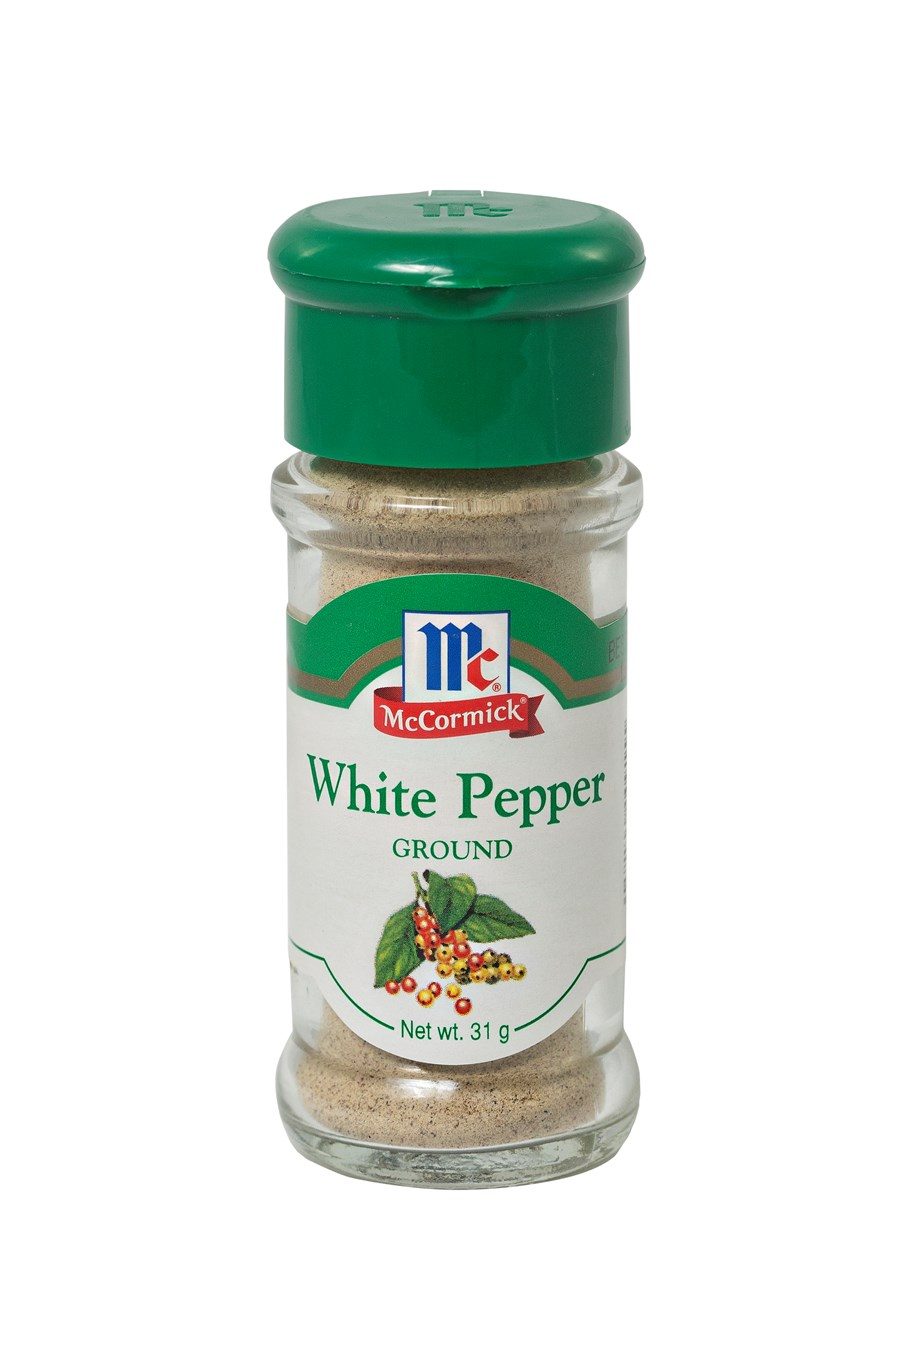 McCormick White Pepper Ground